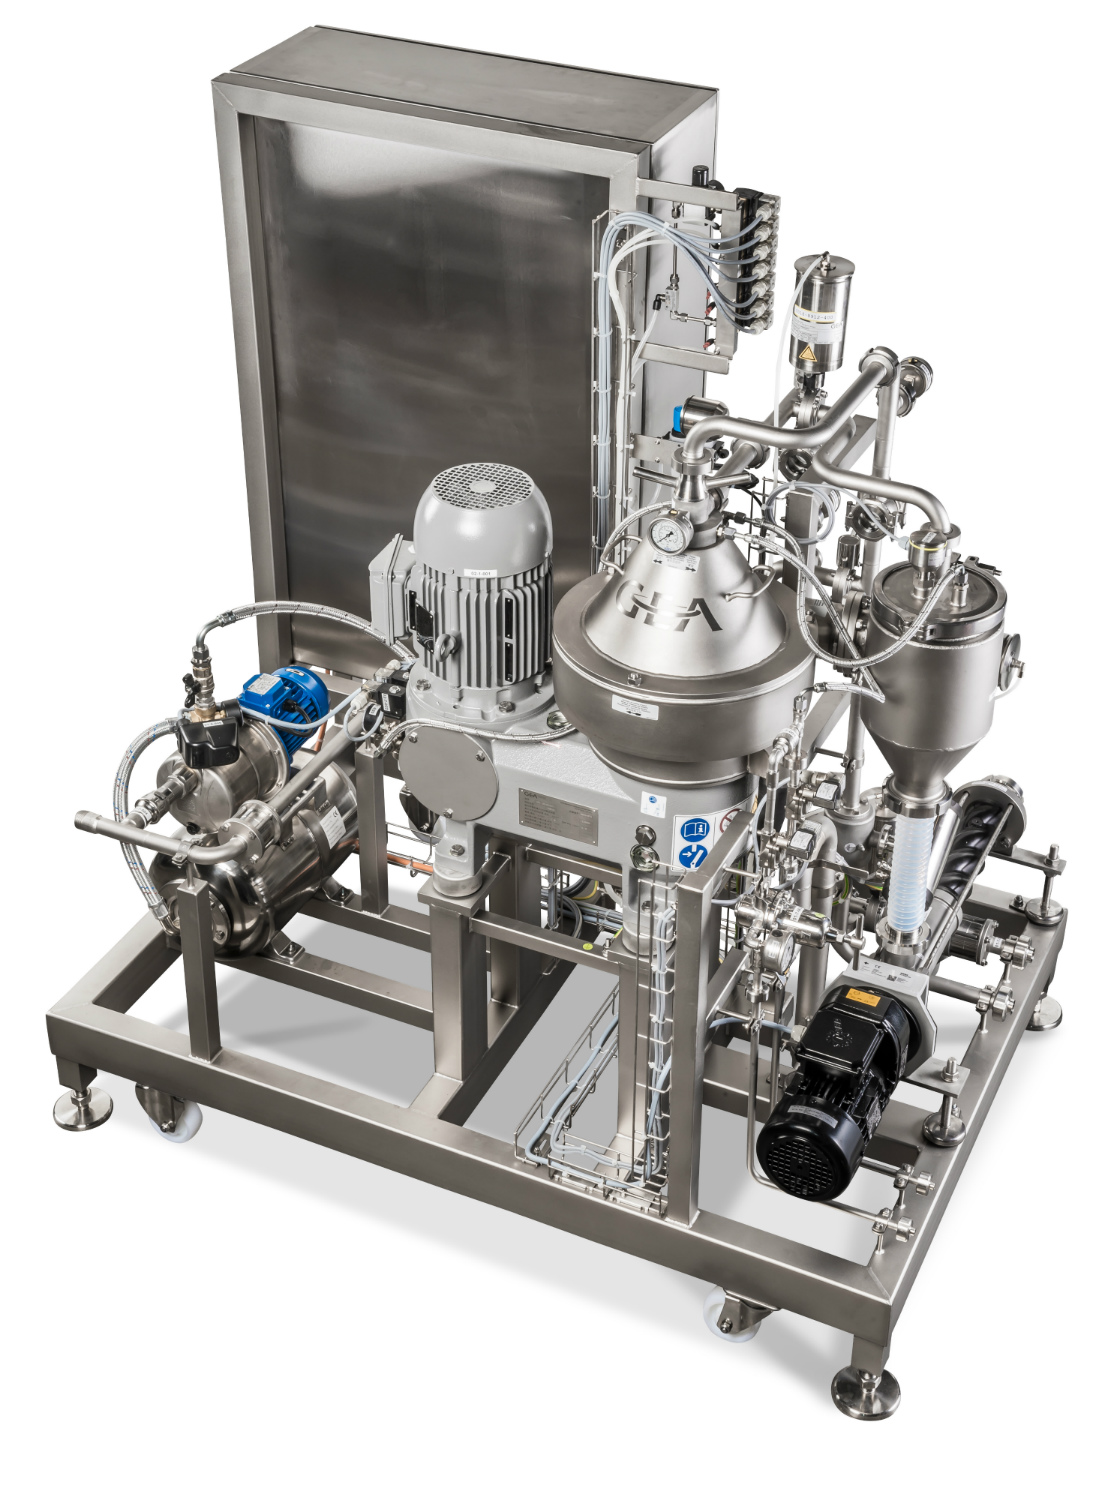 Available in four sizes, the preassembled GEA Plug & Win compact separator integrates into your existing piping matrix and is ready for immediate use. Image: GEA